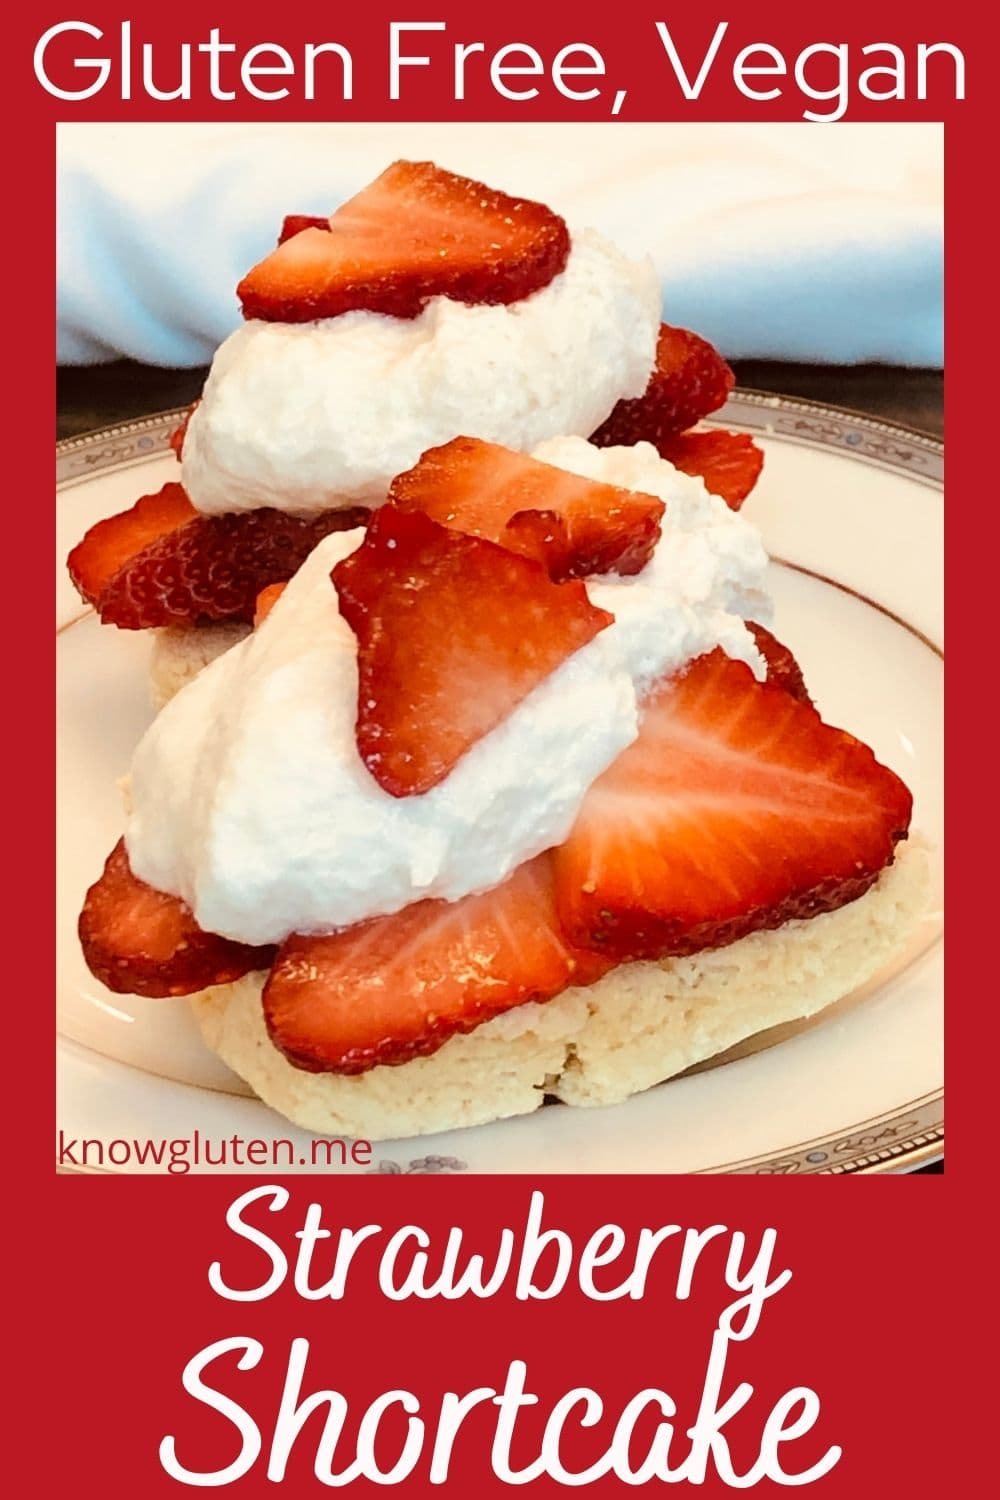 Two gluten free strawberry shortcakes on a china plate.